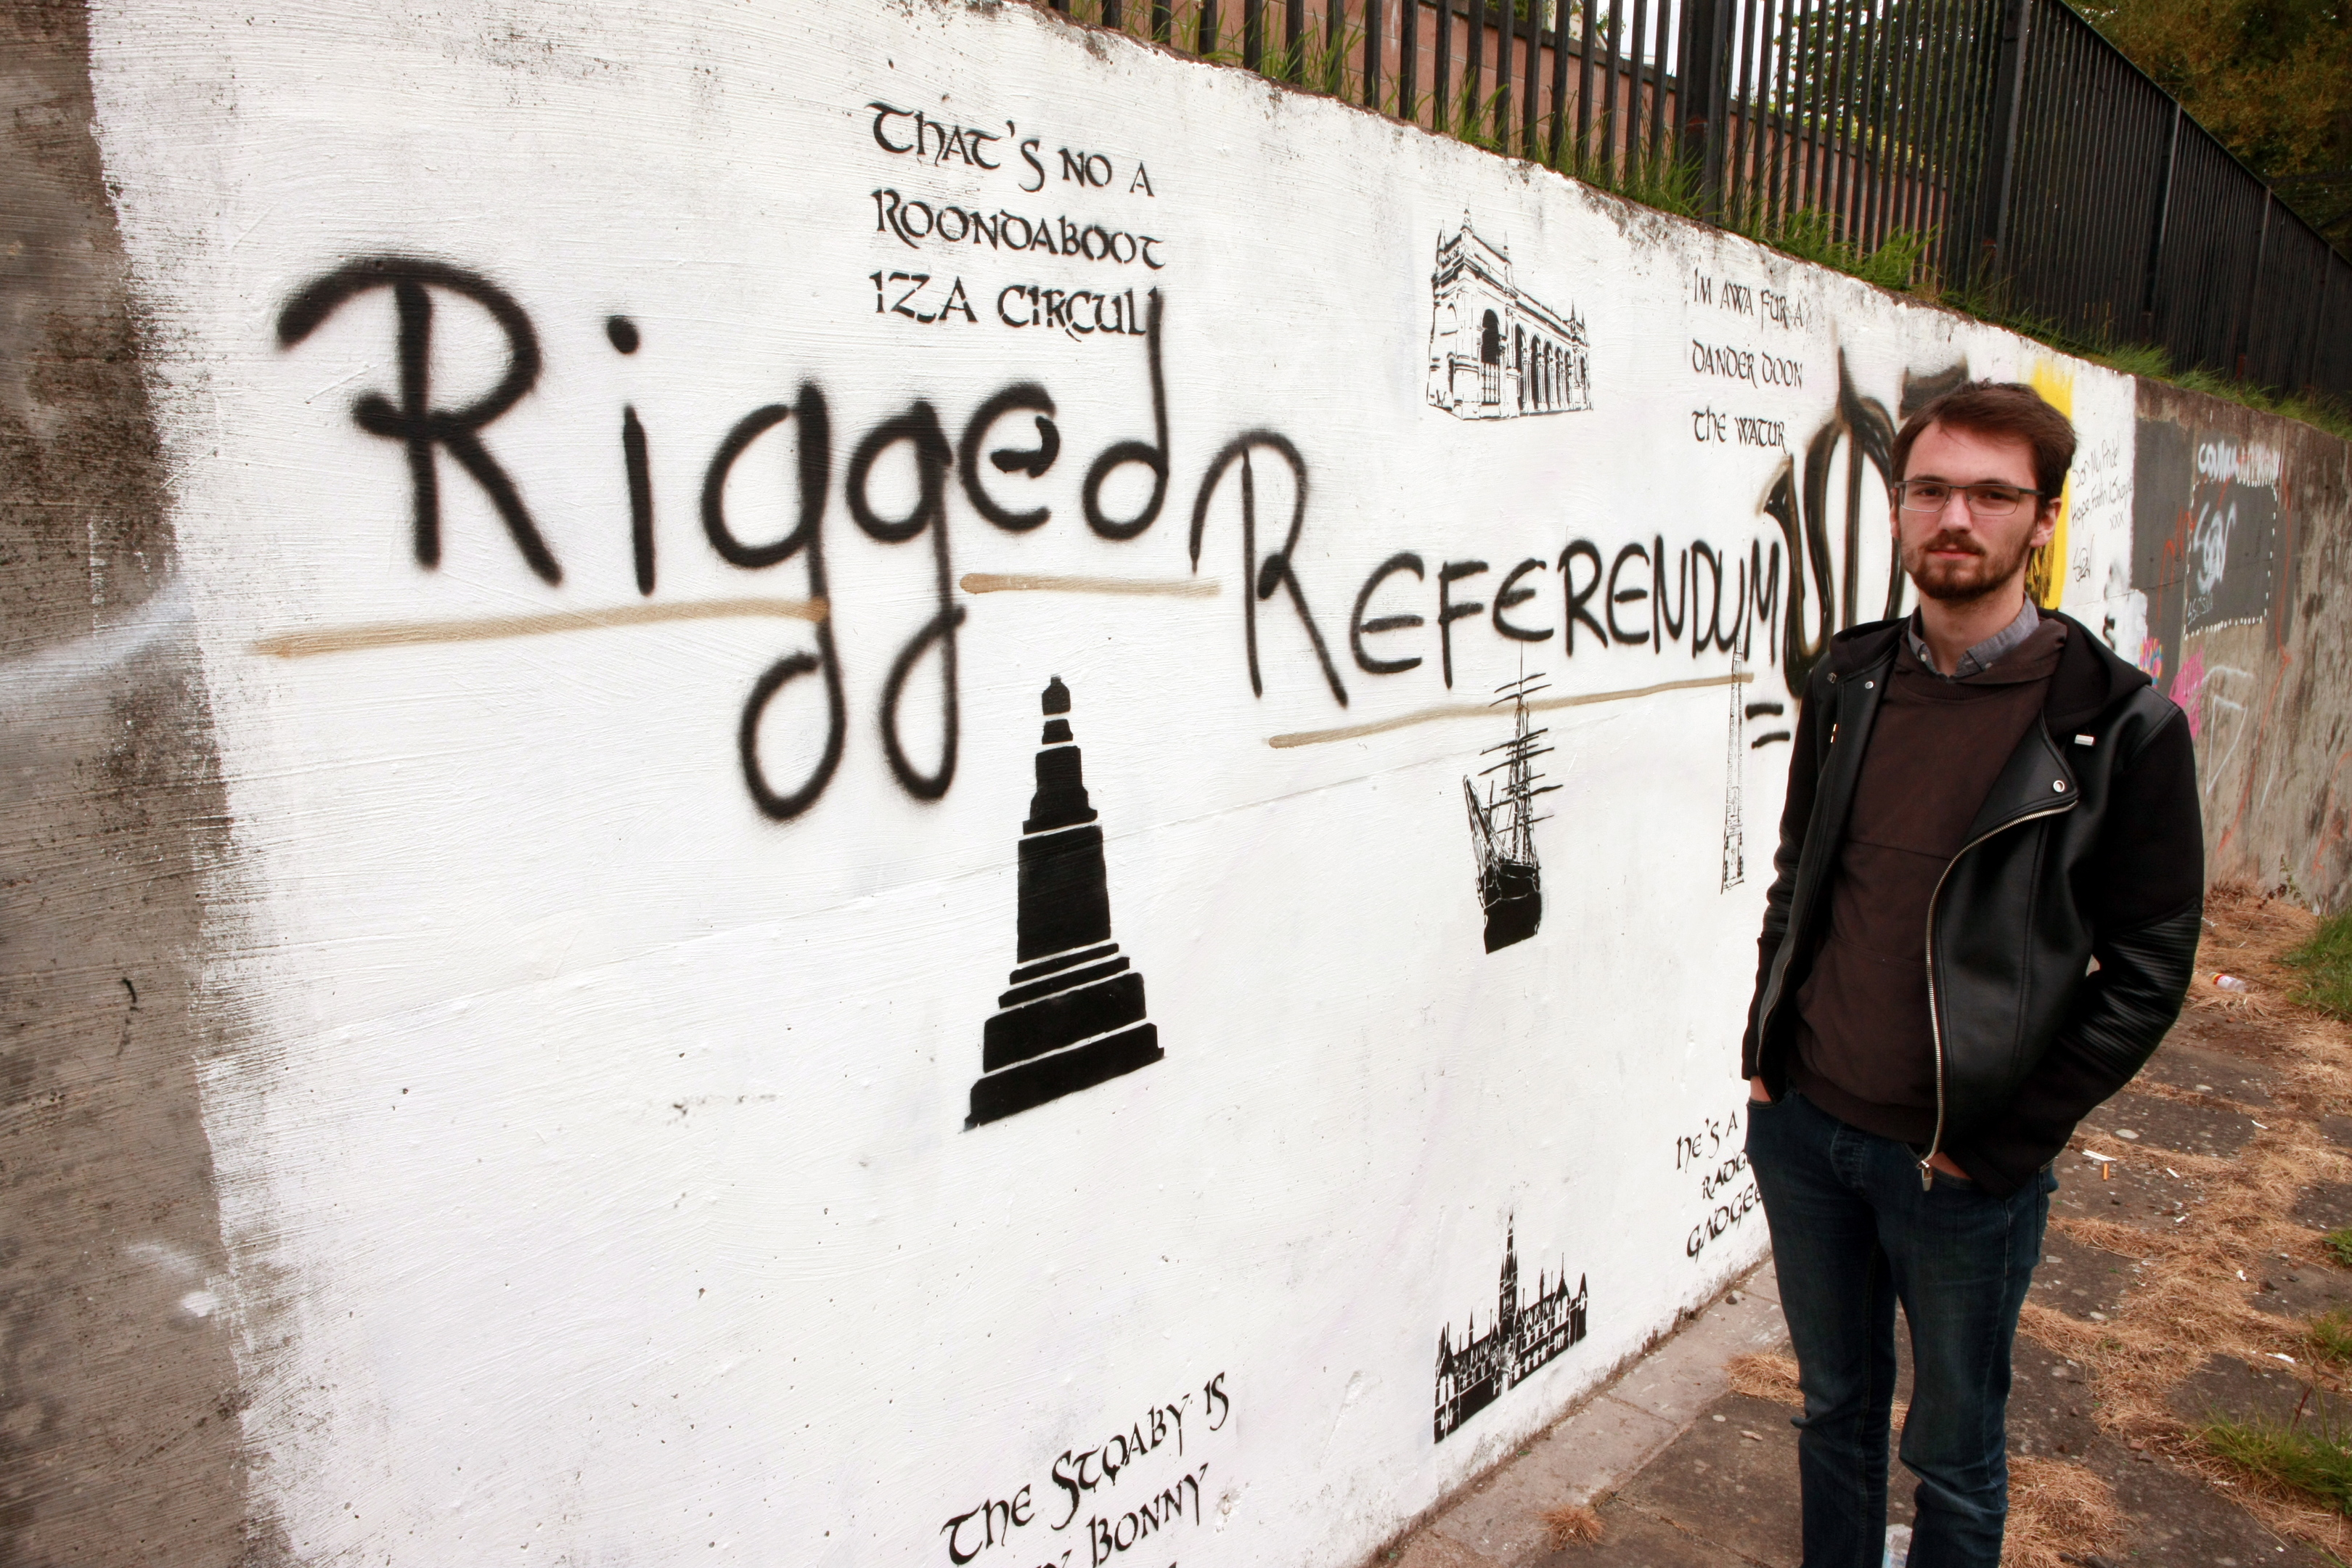 Connor Beaton next to the vandalised mural, which has been hit with graffiti.